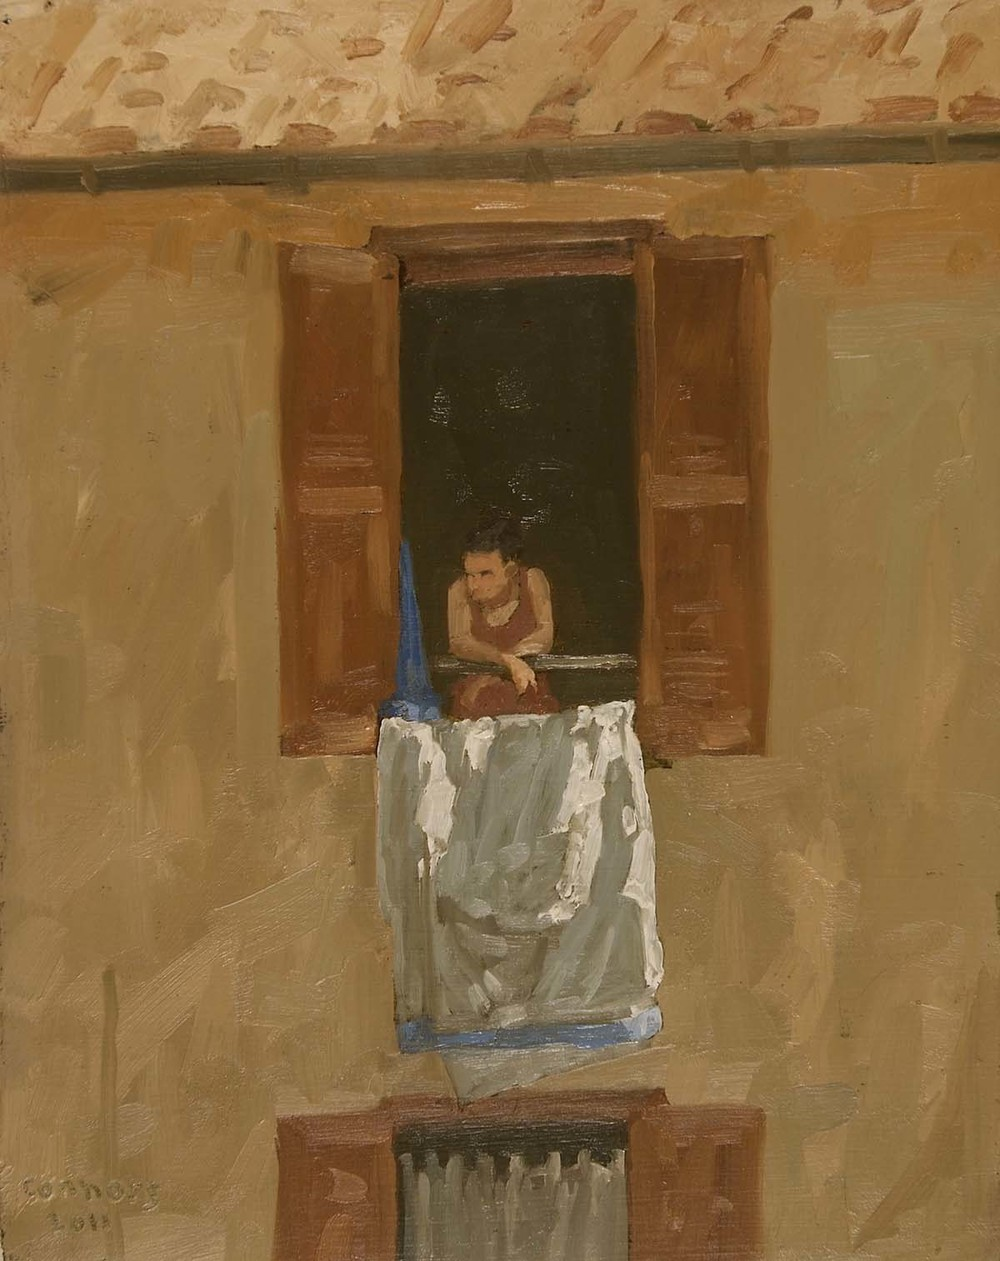 Trastevere Window, 12 x 9.5 inches, oil on prepared paper